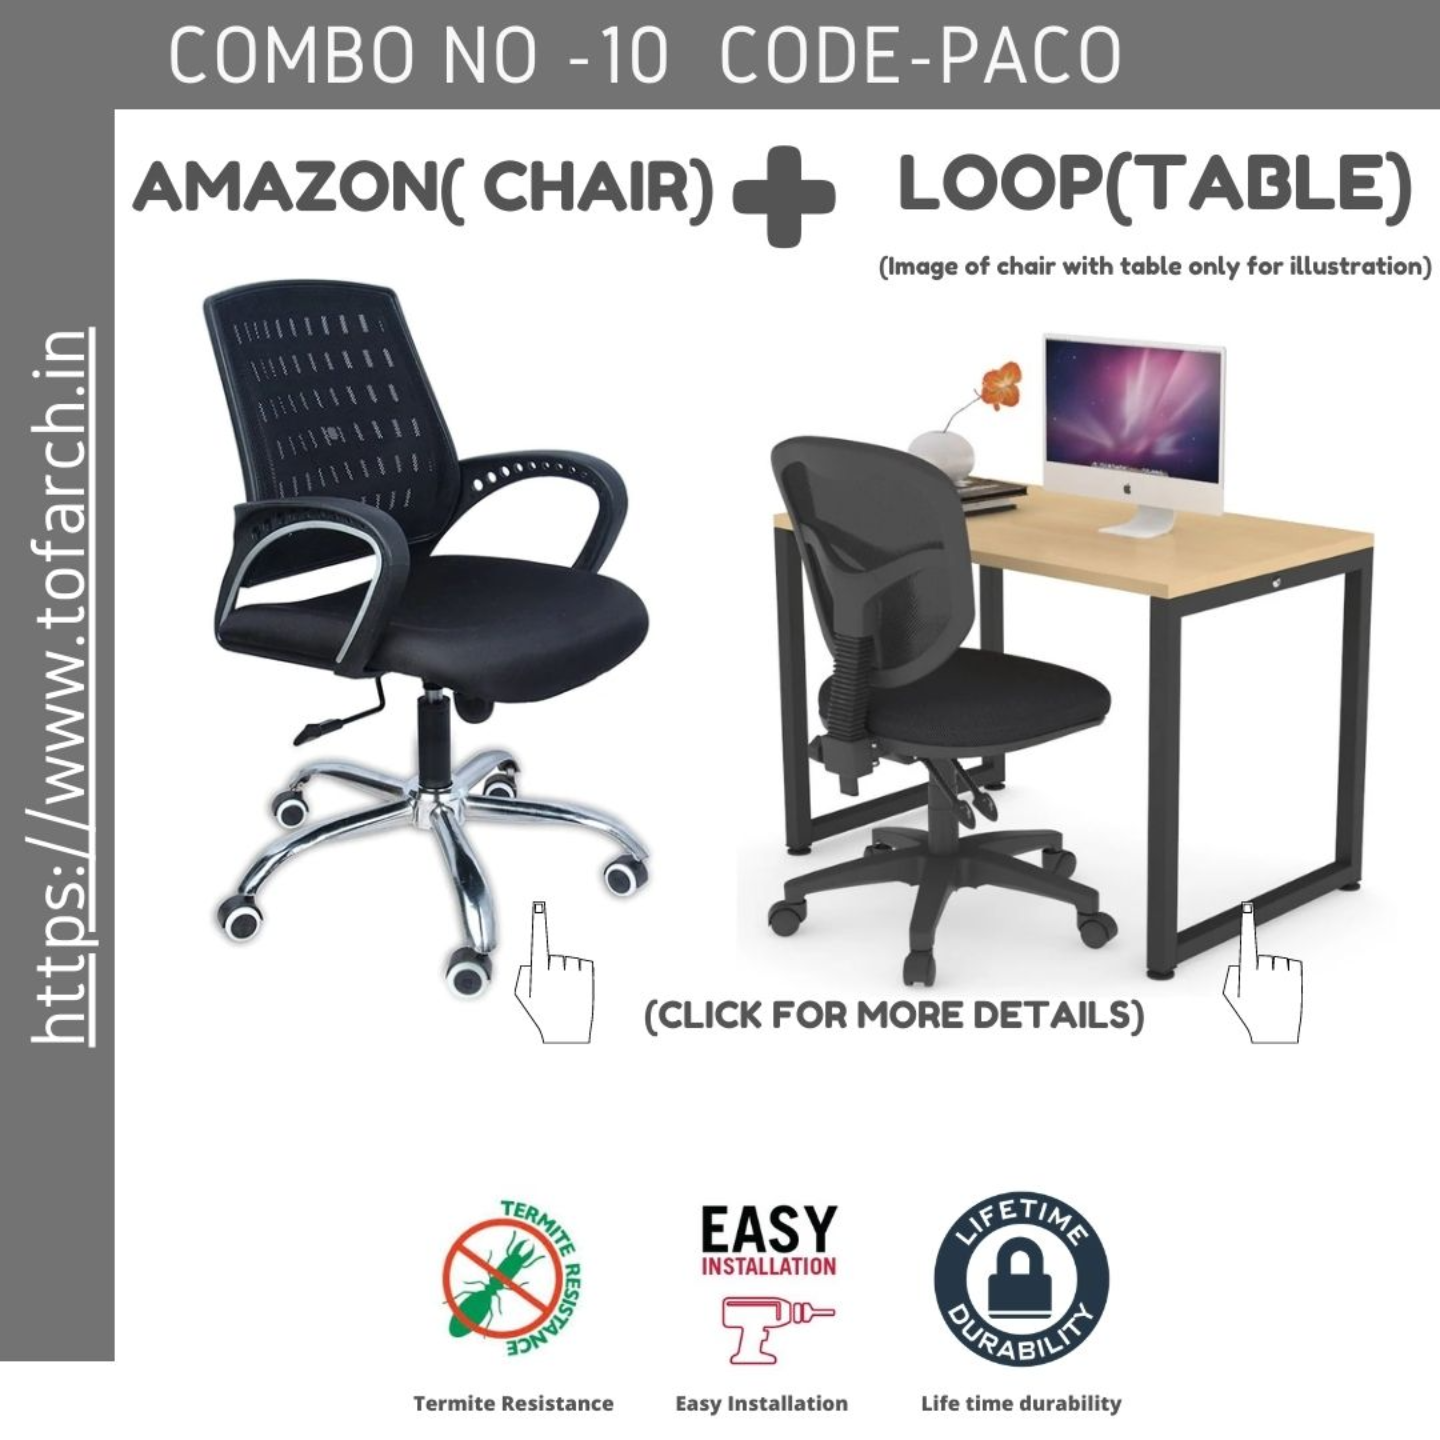 Work from Home Combo PACO (LOOP TABLE ) + AMAZON CHAIR